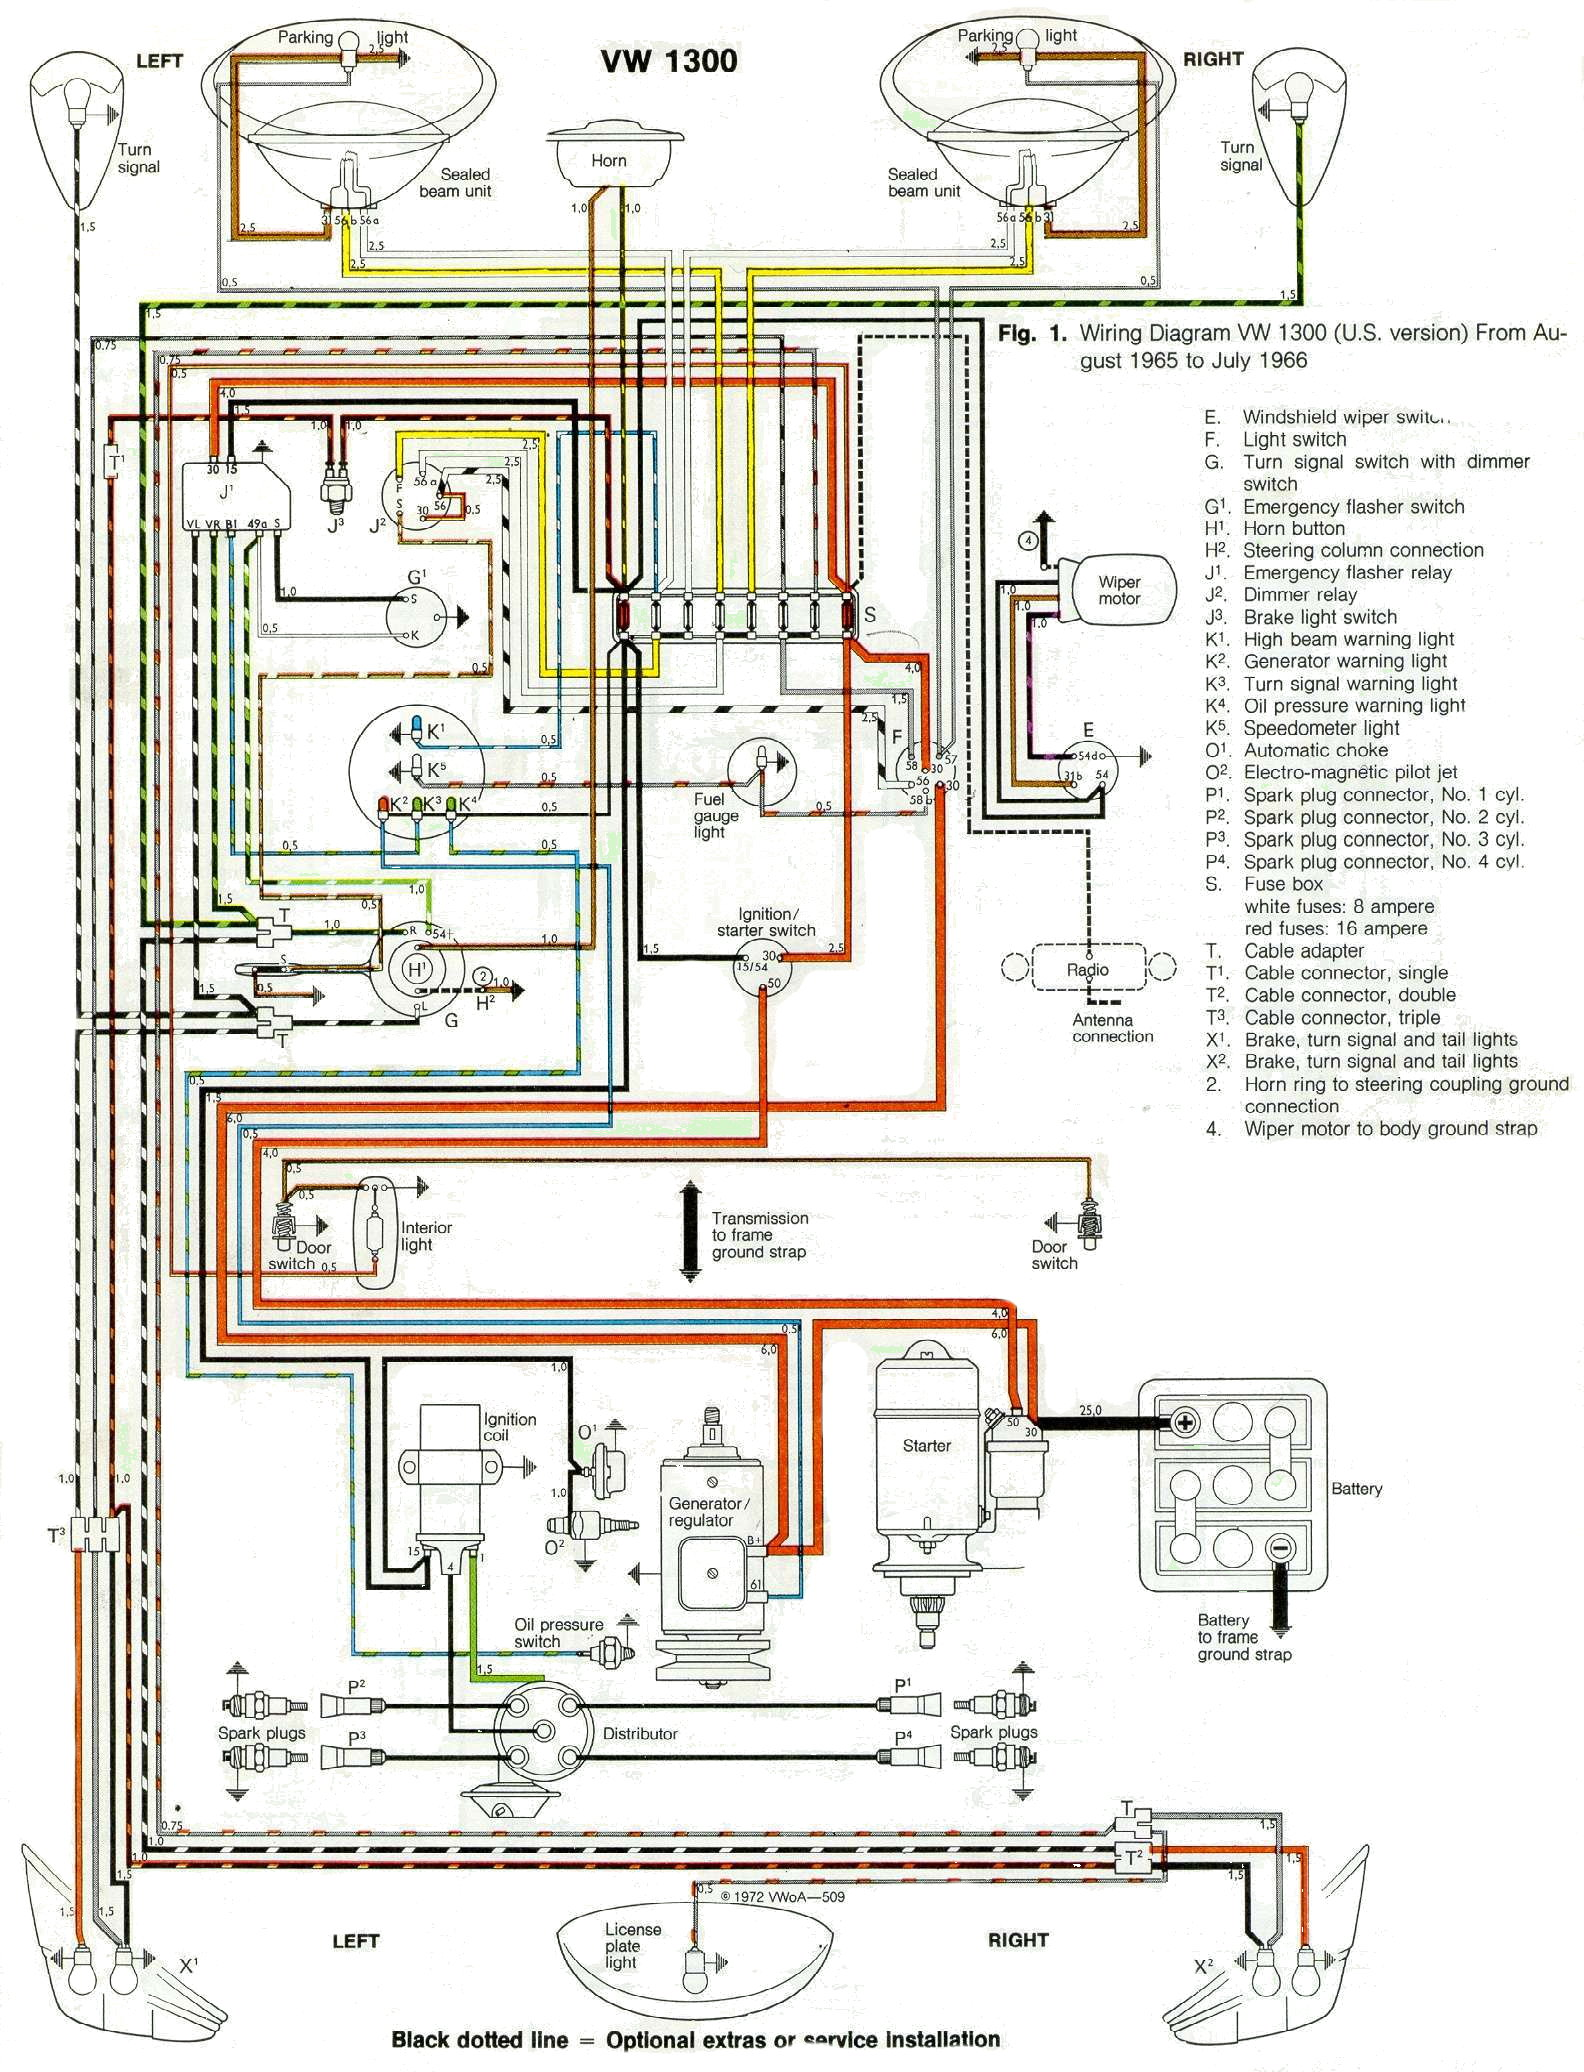 1966 Wiring vw wiring harness diagram cj7 wiring harness diagram \u2022 wiring 2002 vw beetle wiring diagram at fashall.co